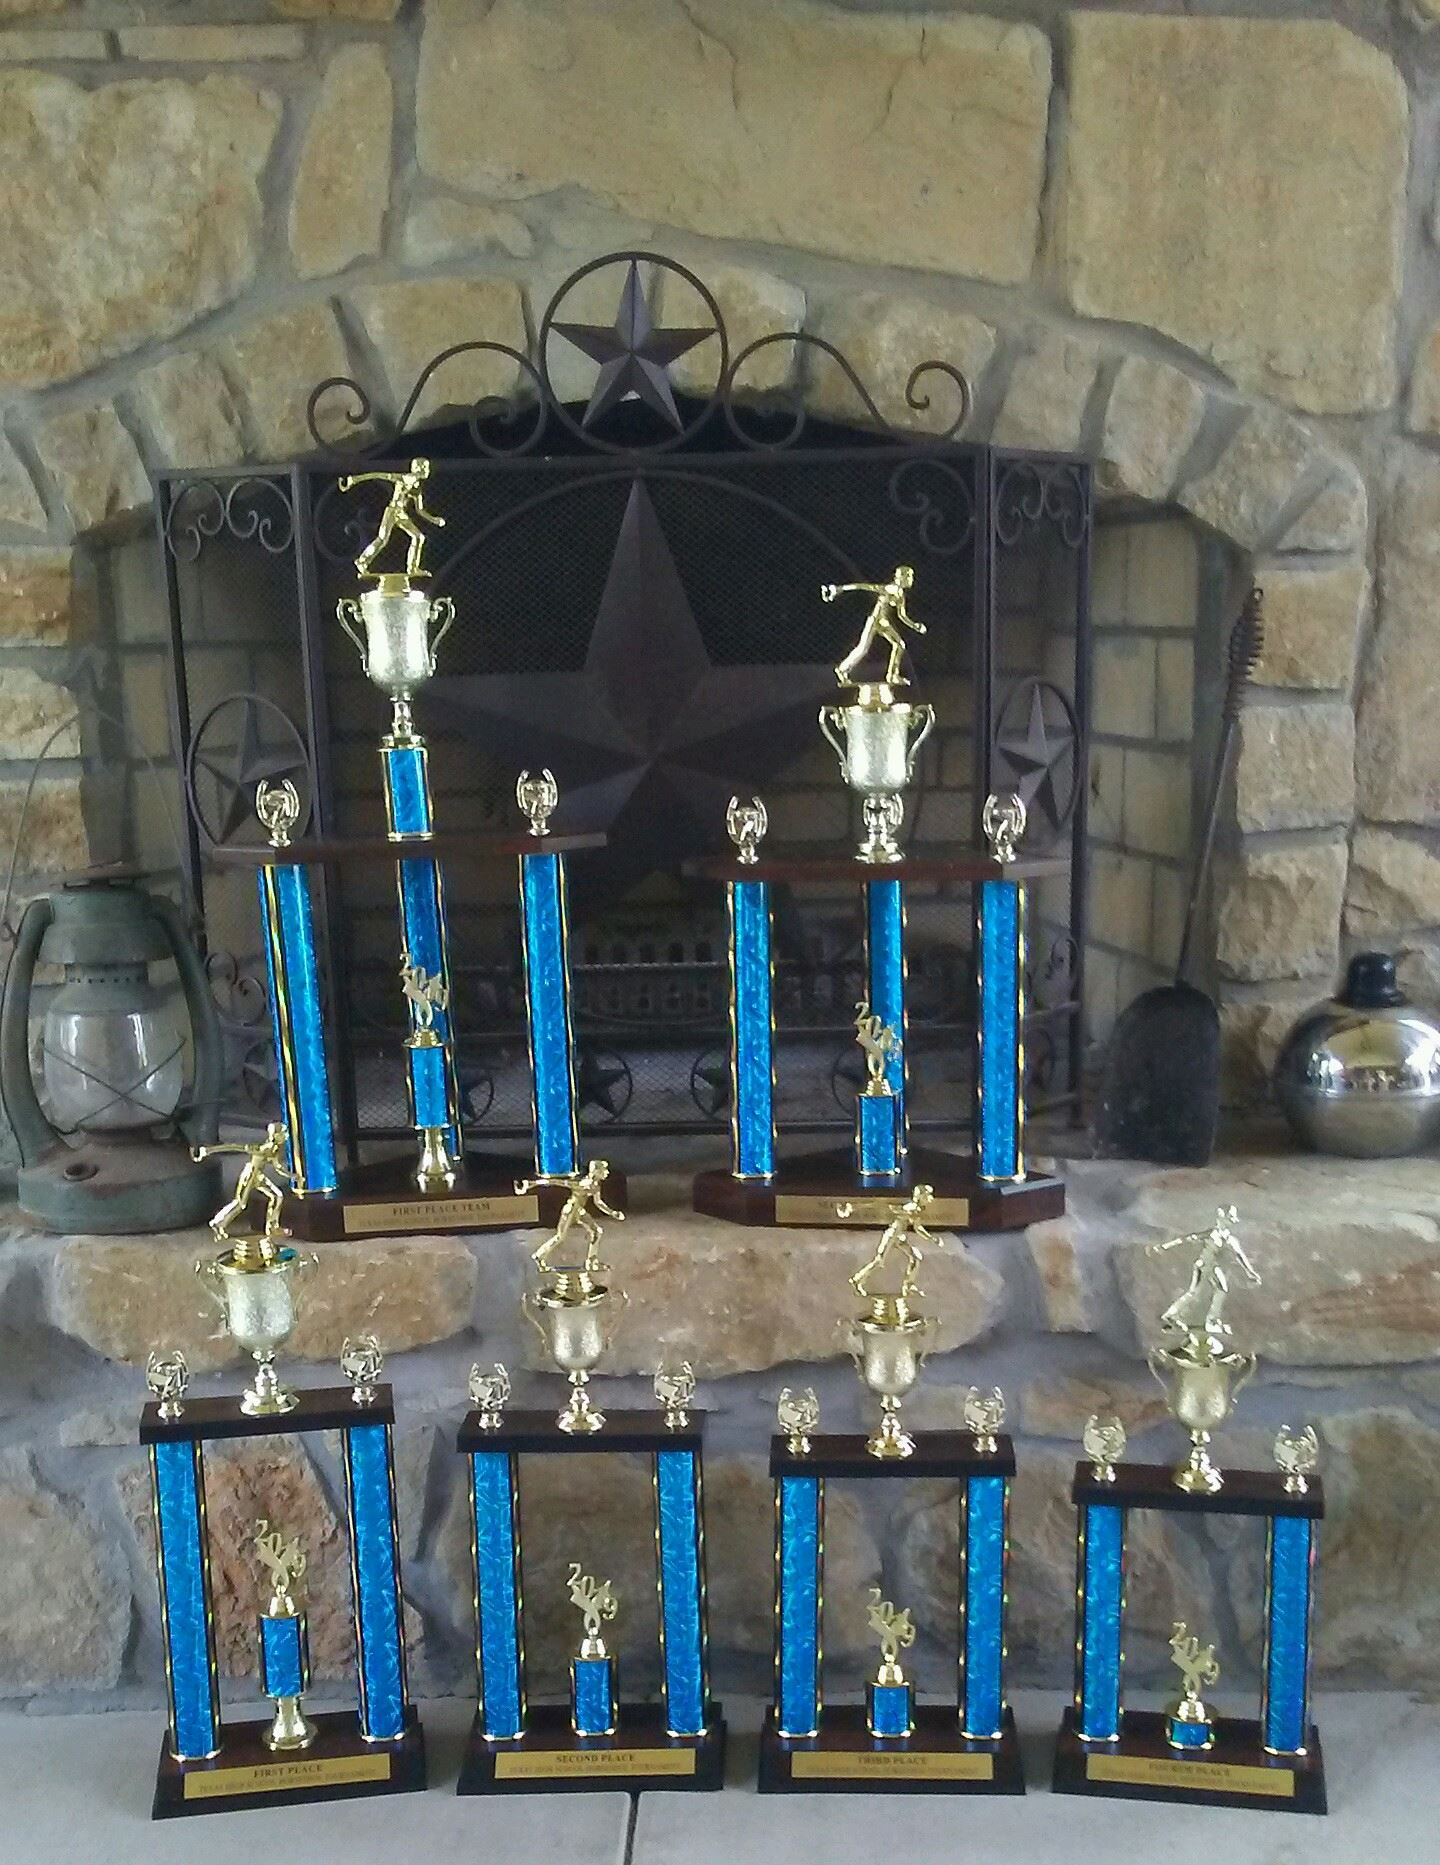 2019 HS State Tour Trophies